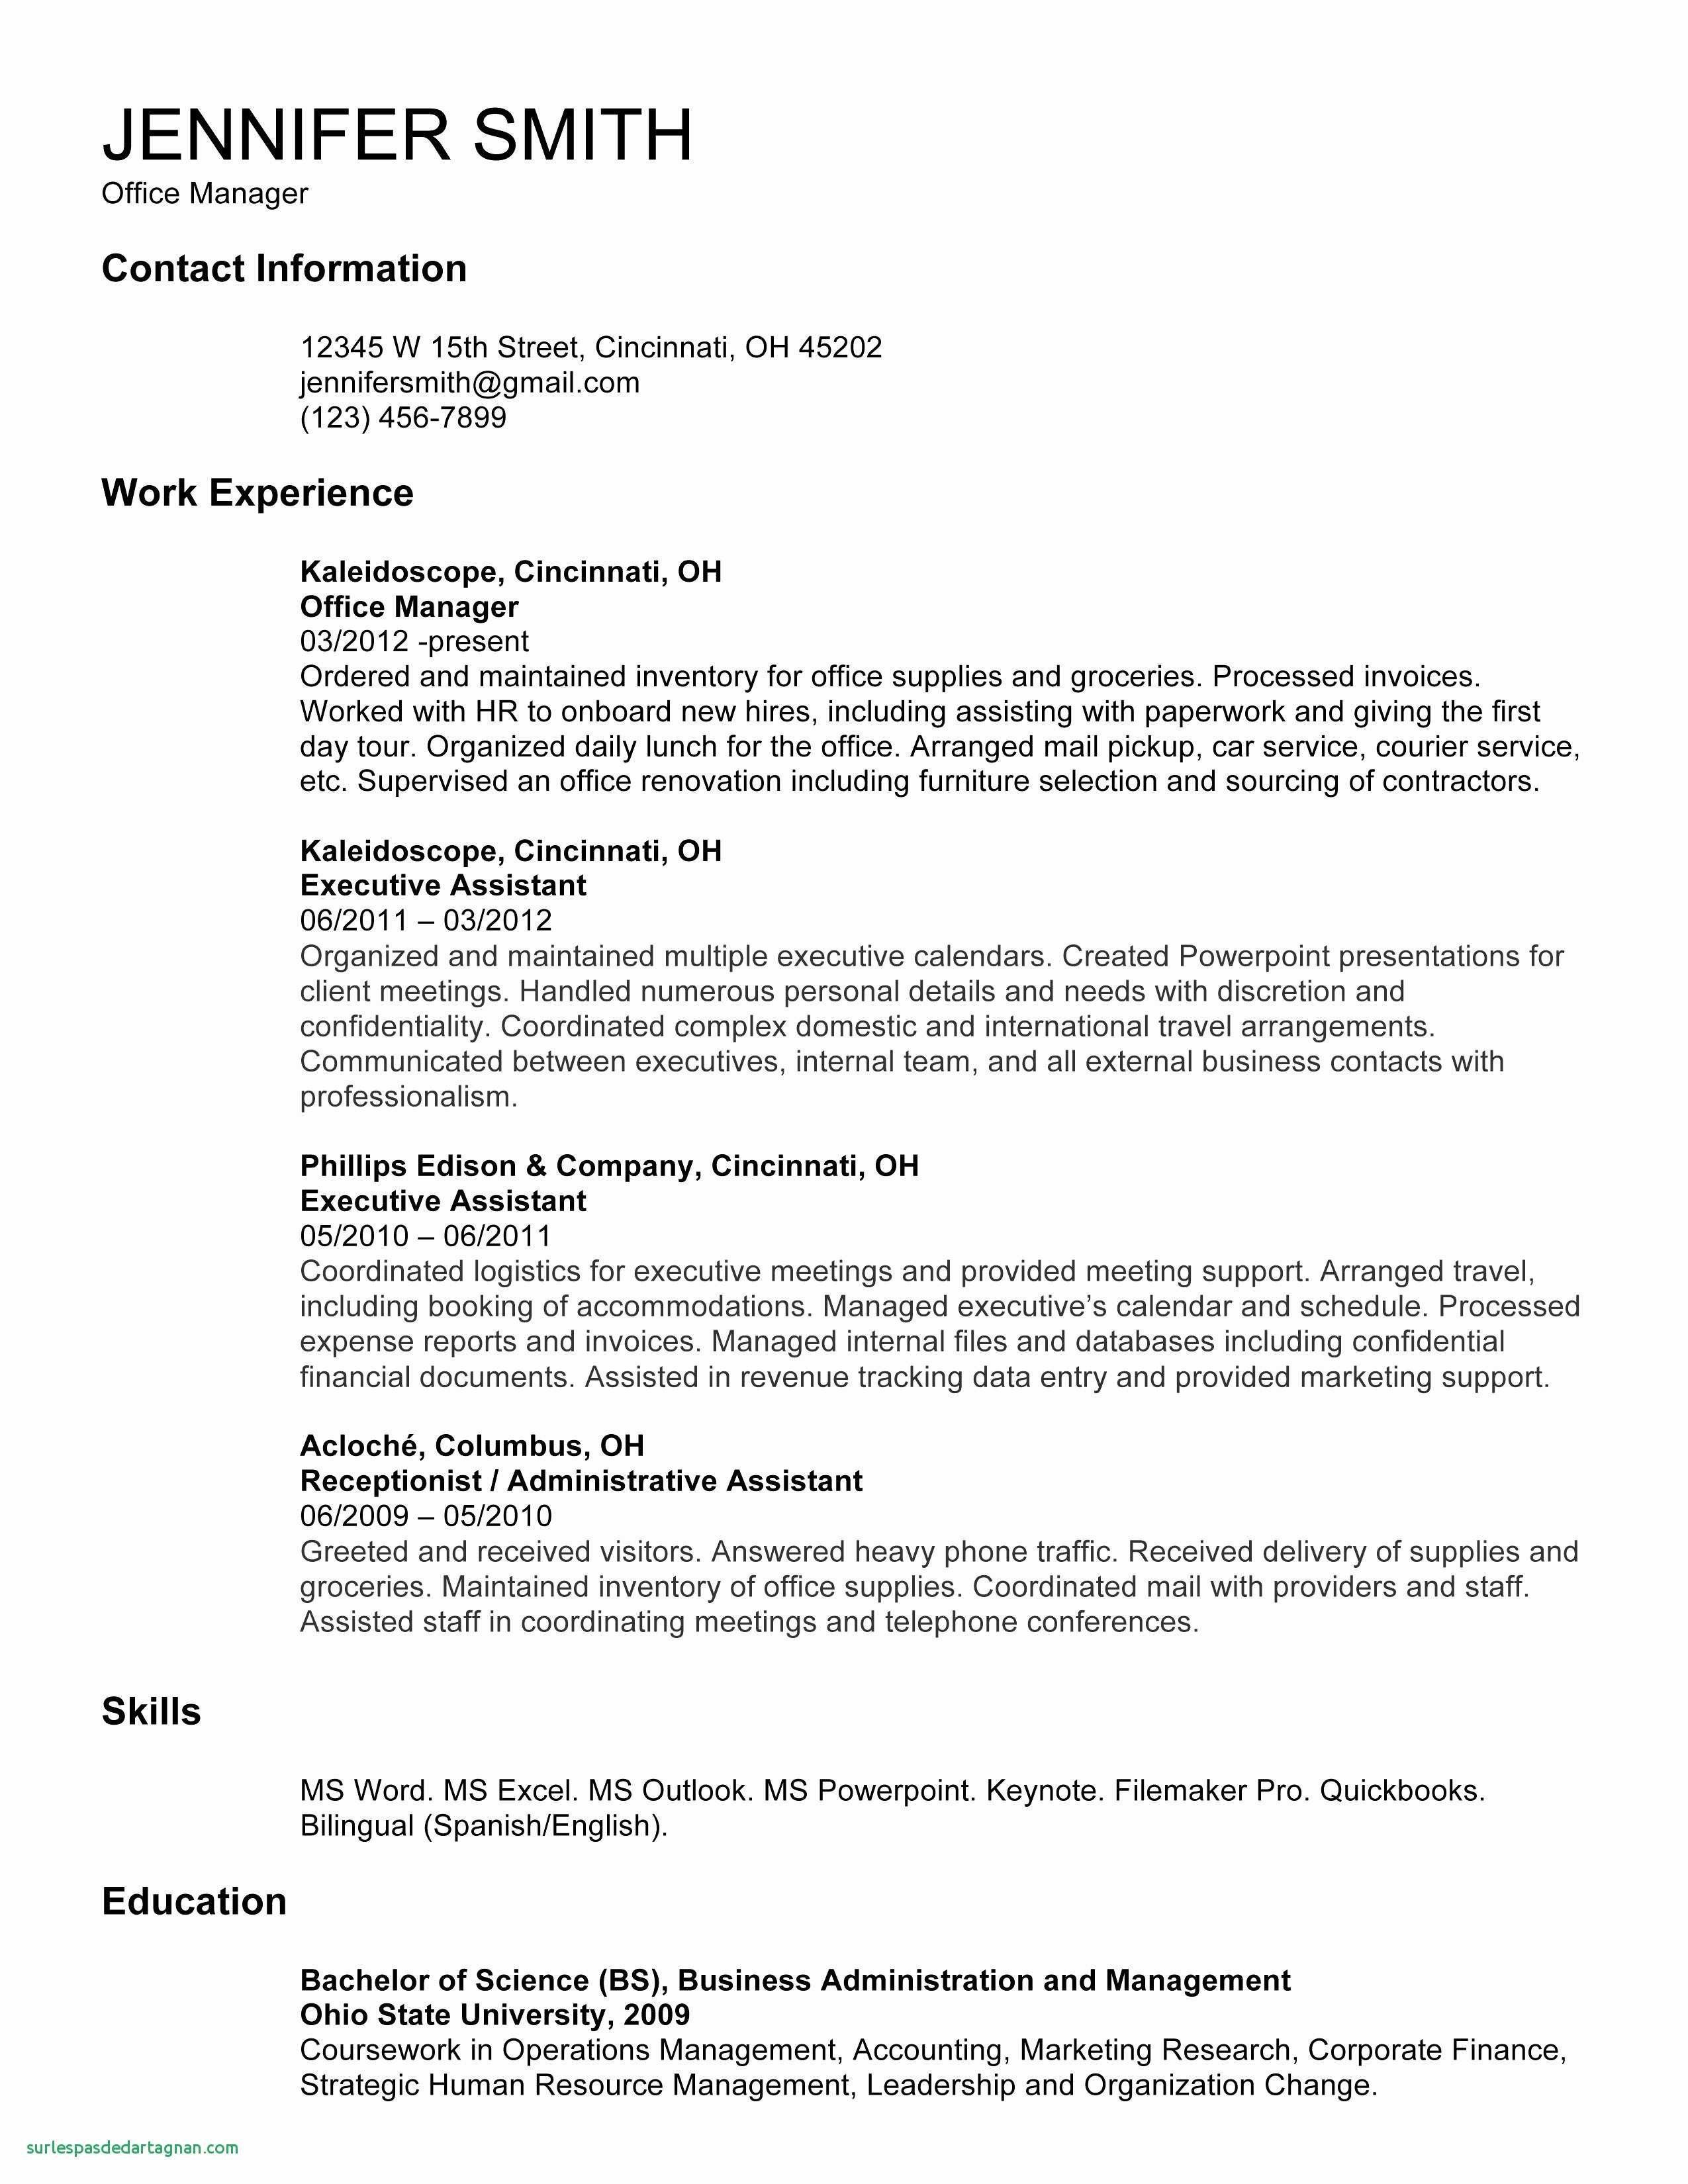 Finance Resume Template - Resume Template Download Free Unique ¢Ë†Å¡ Resume Template Download